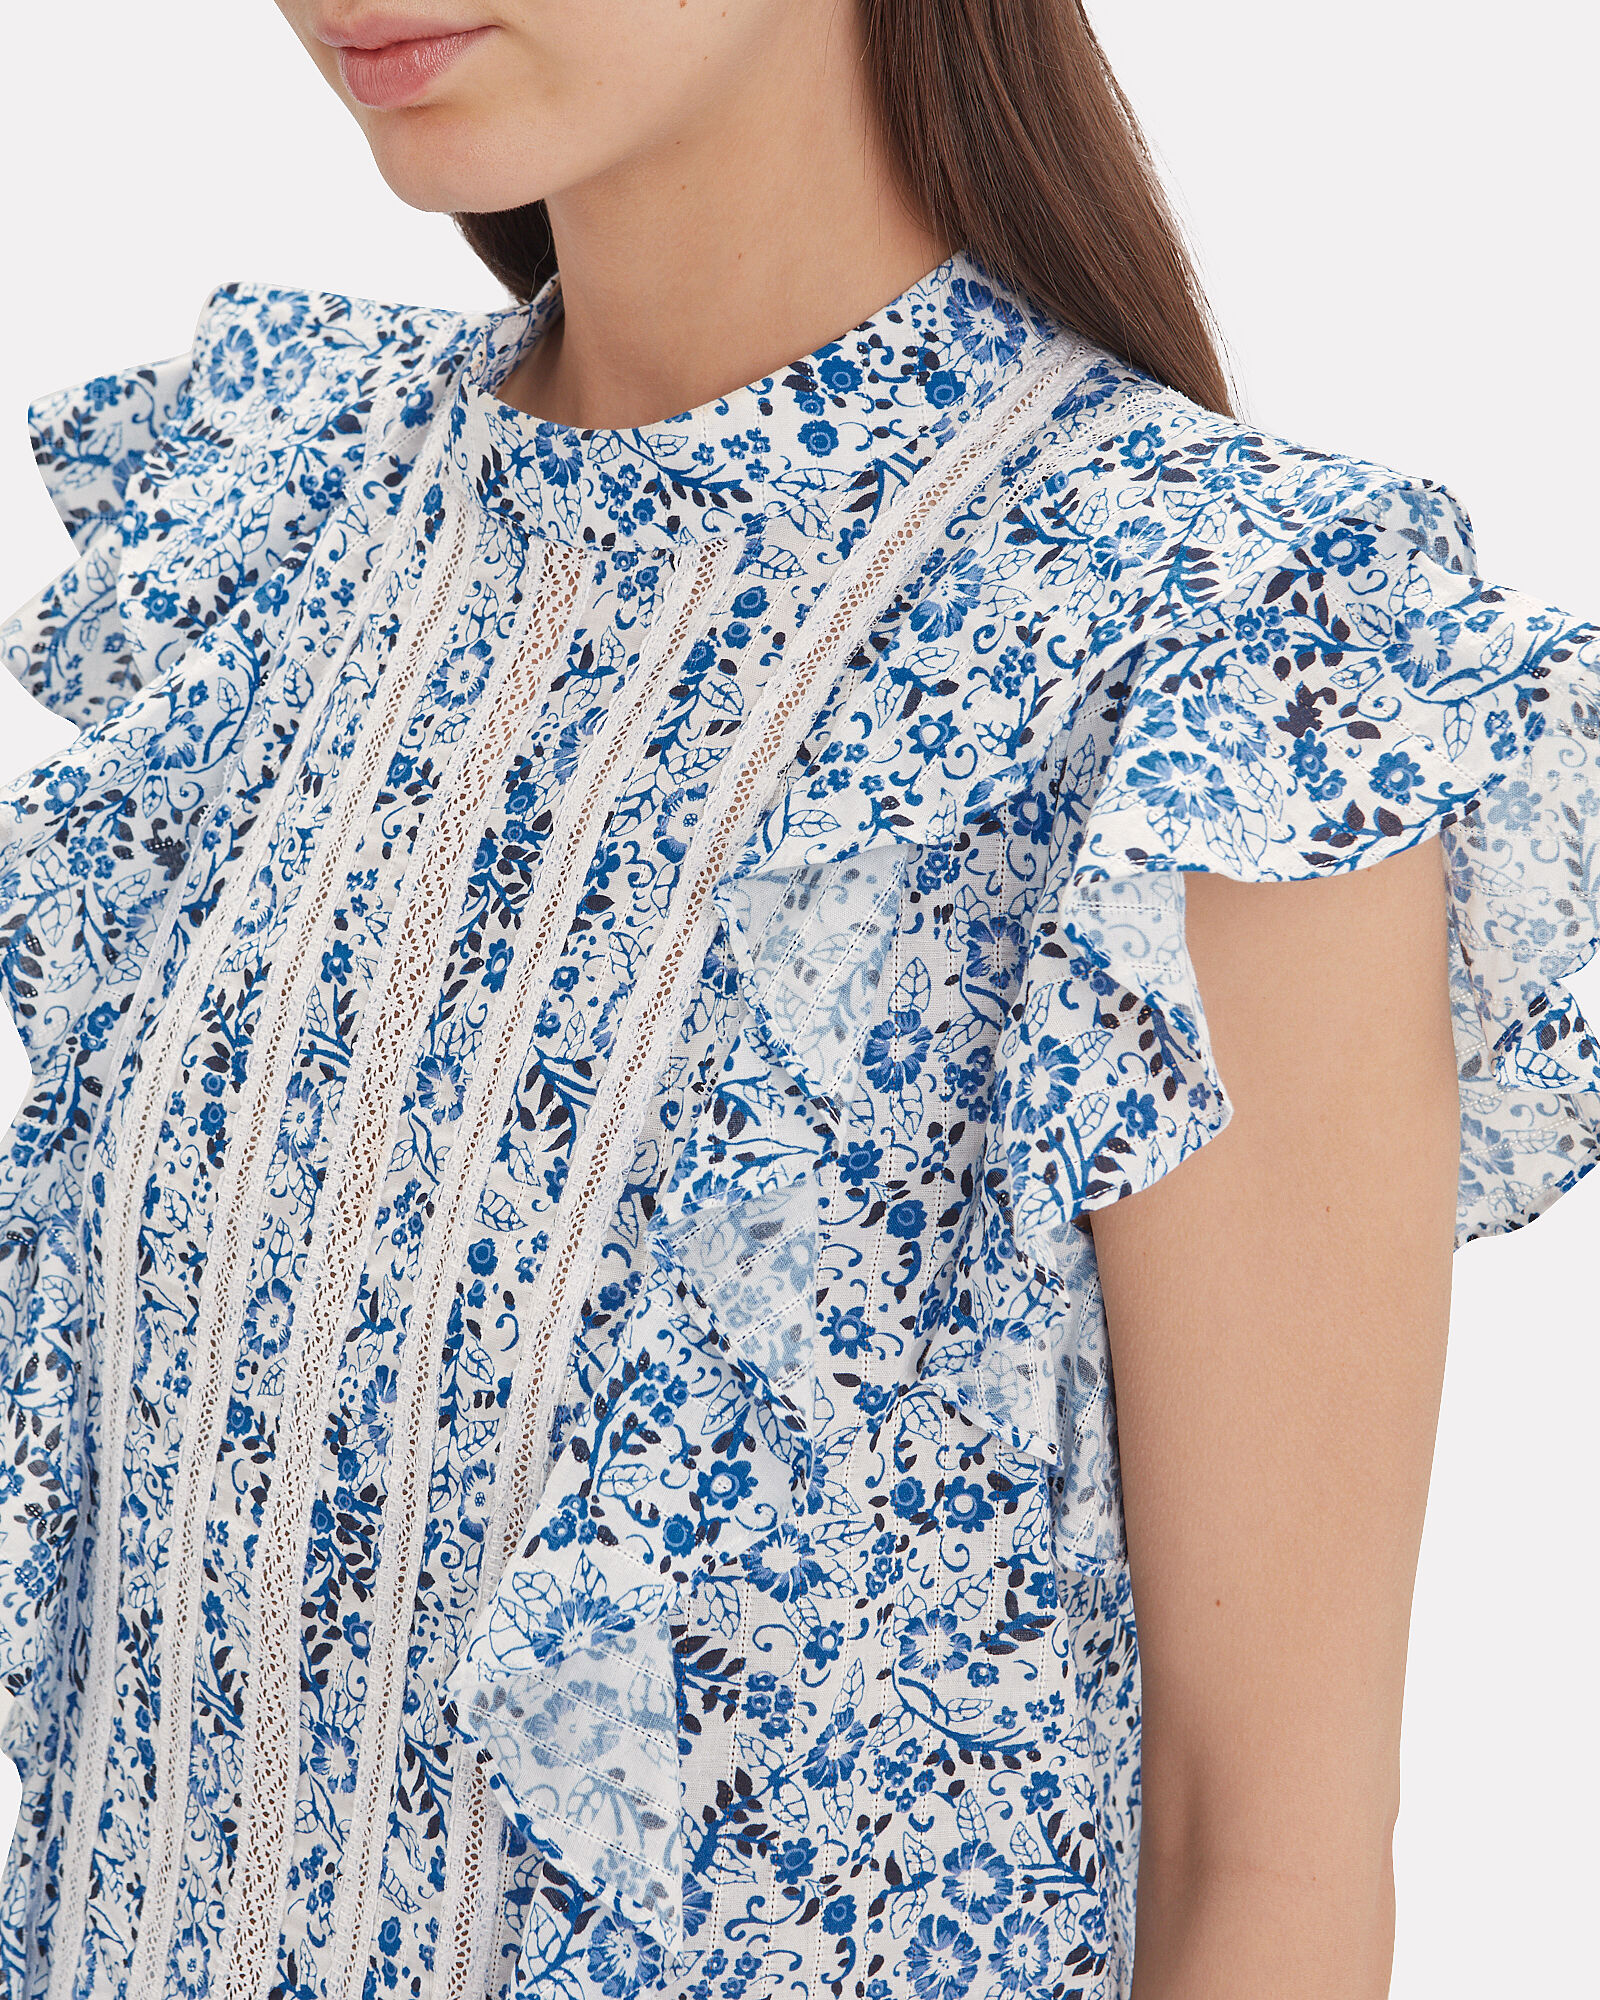 Sol Ruffle Sleeve Floral Blouse, BLUE/WHITE FLORAL, hi-res